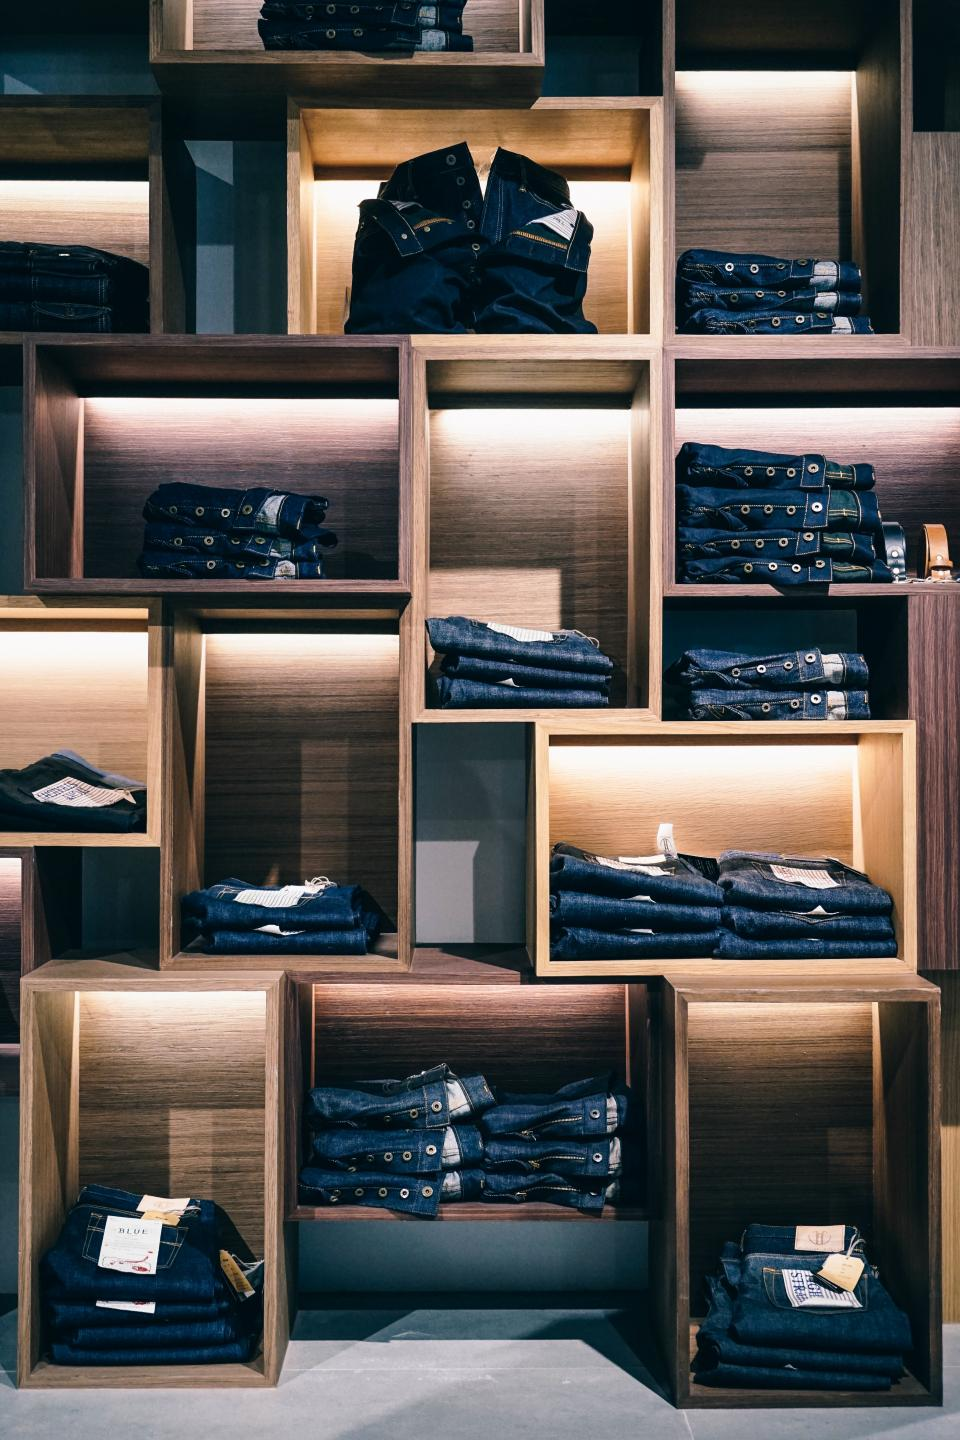 jeans denim clothing fashion store shopping mall wooden shelf